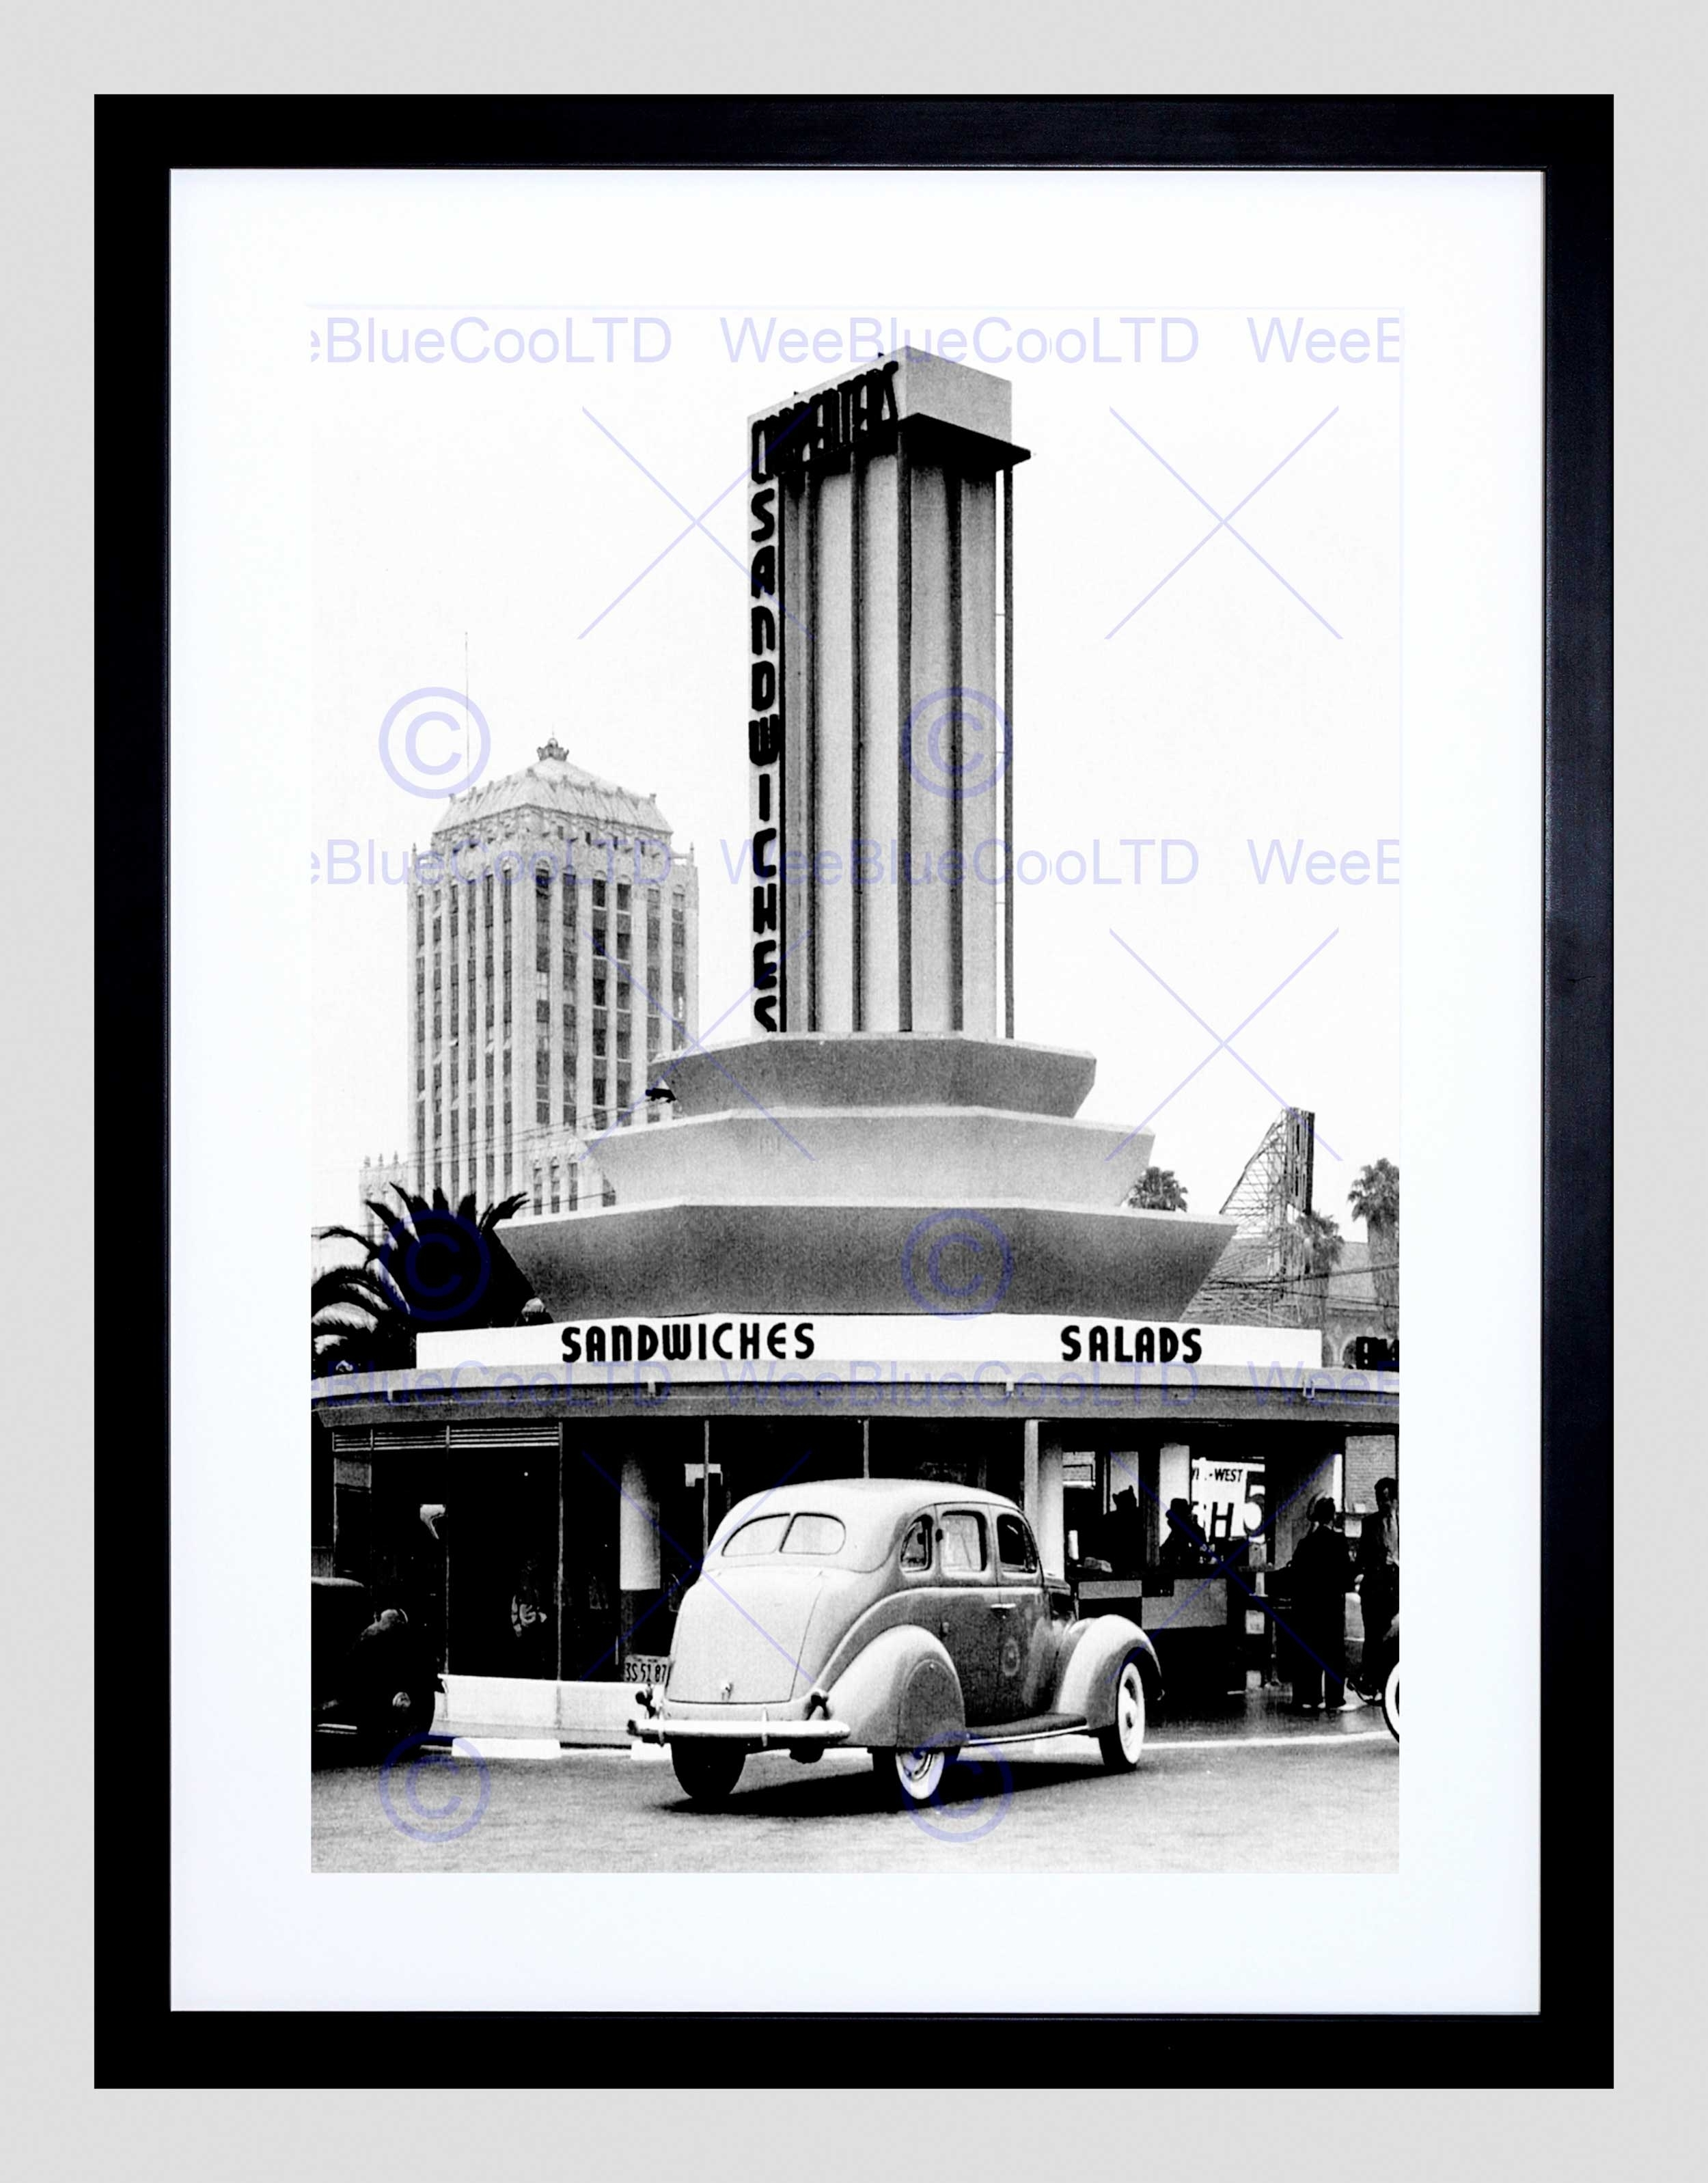 Vintage Sandwich Shop Los Angeles California Usa Framed Art Print Regarding Most Up To Date Los Angeles Framed Art Prints (View 11 of 15)